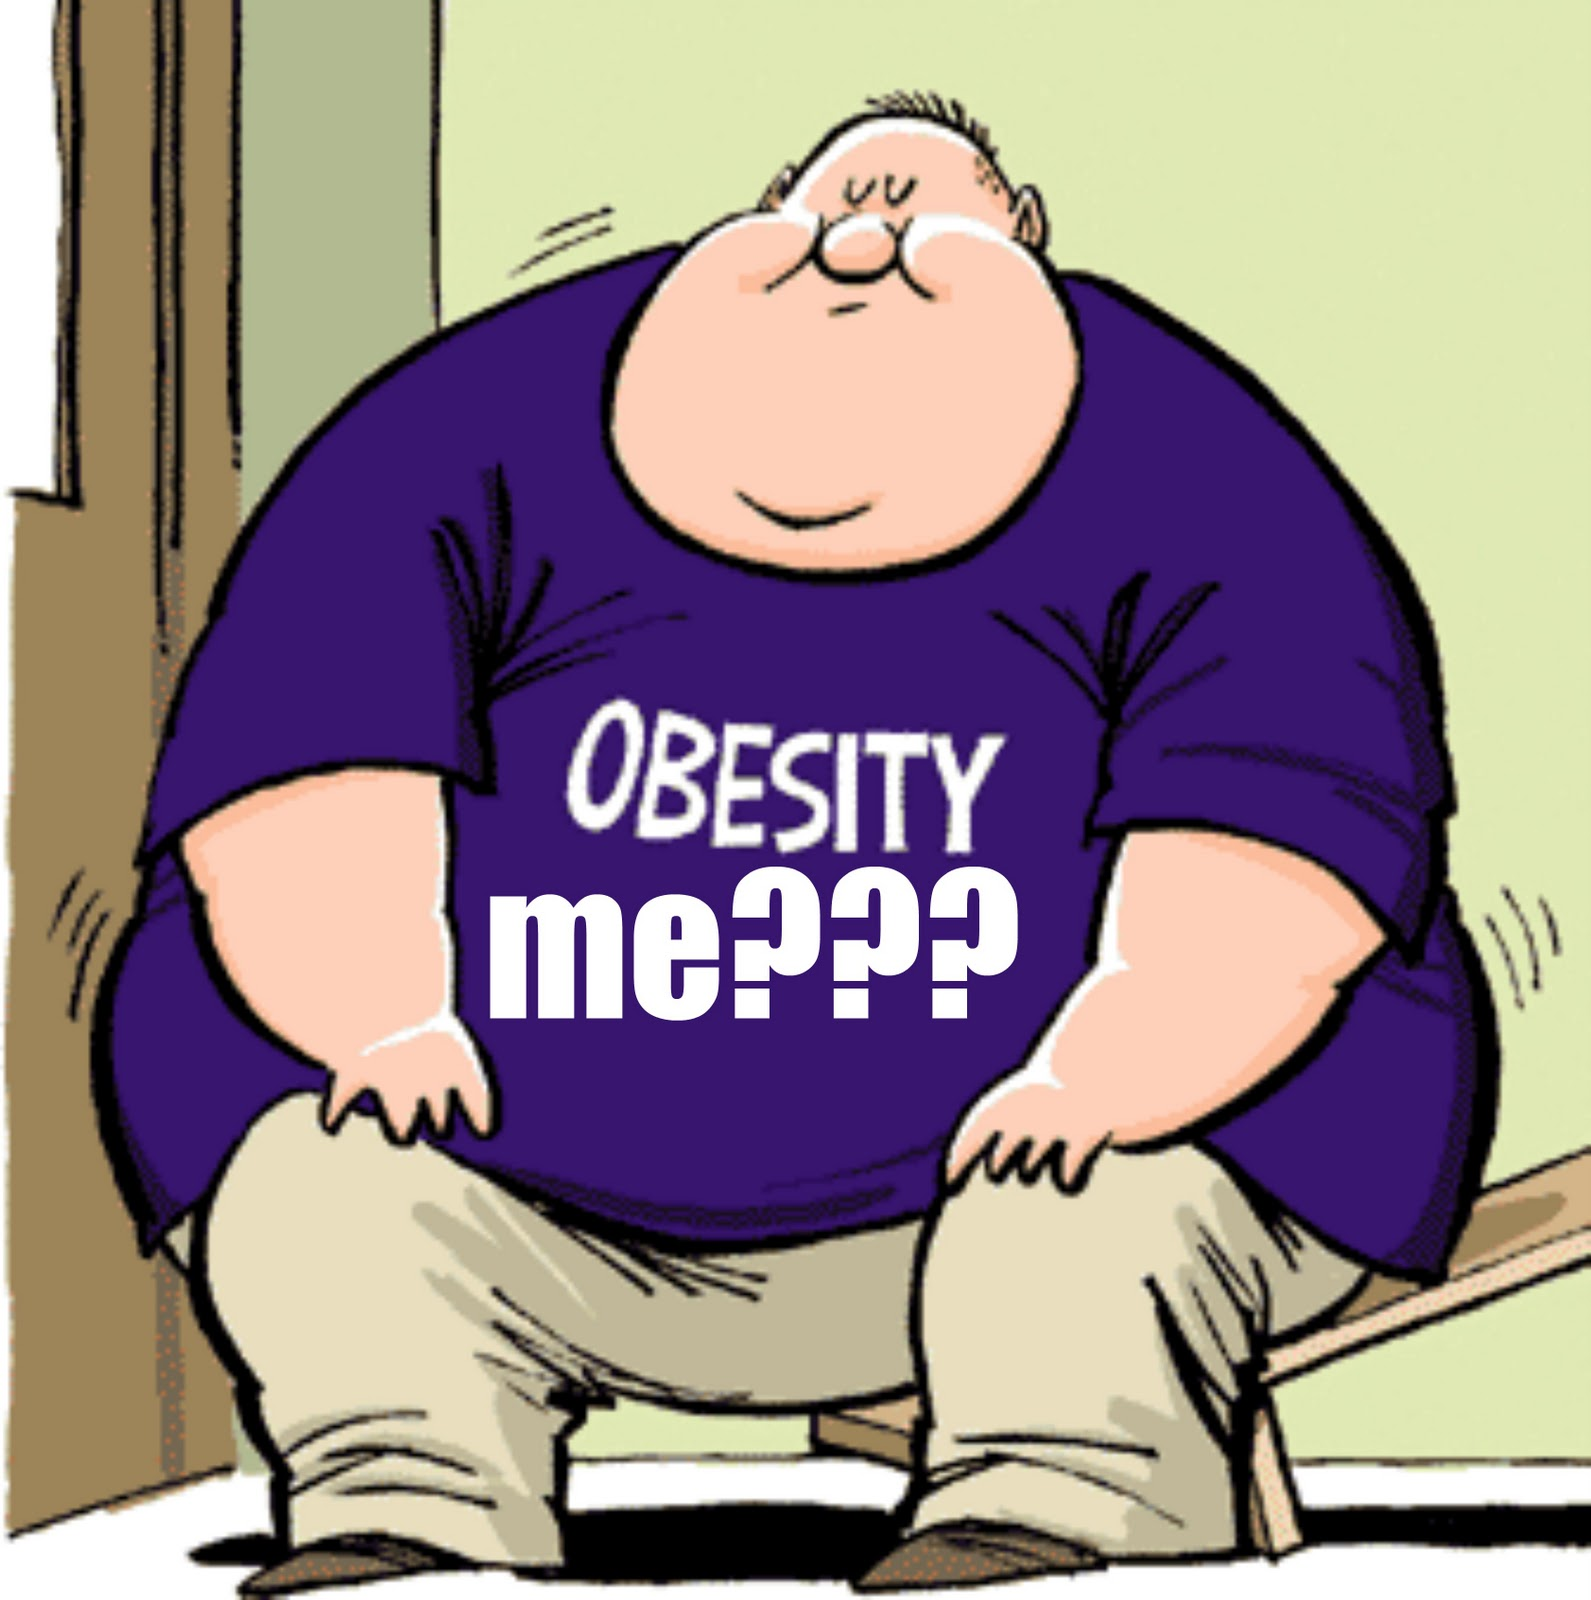 dialogue of obesity